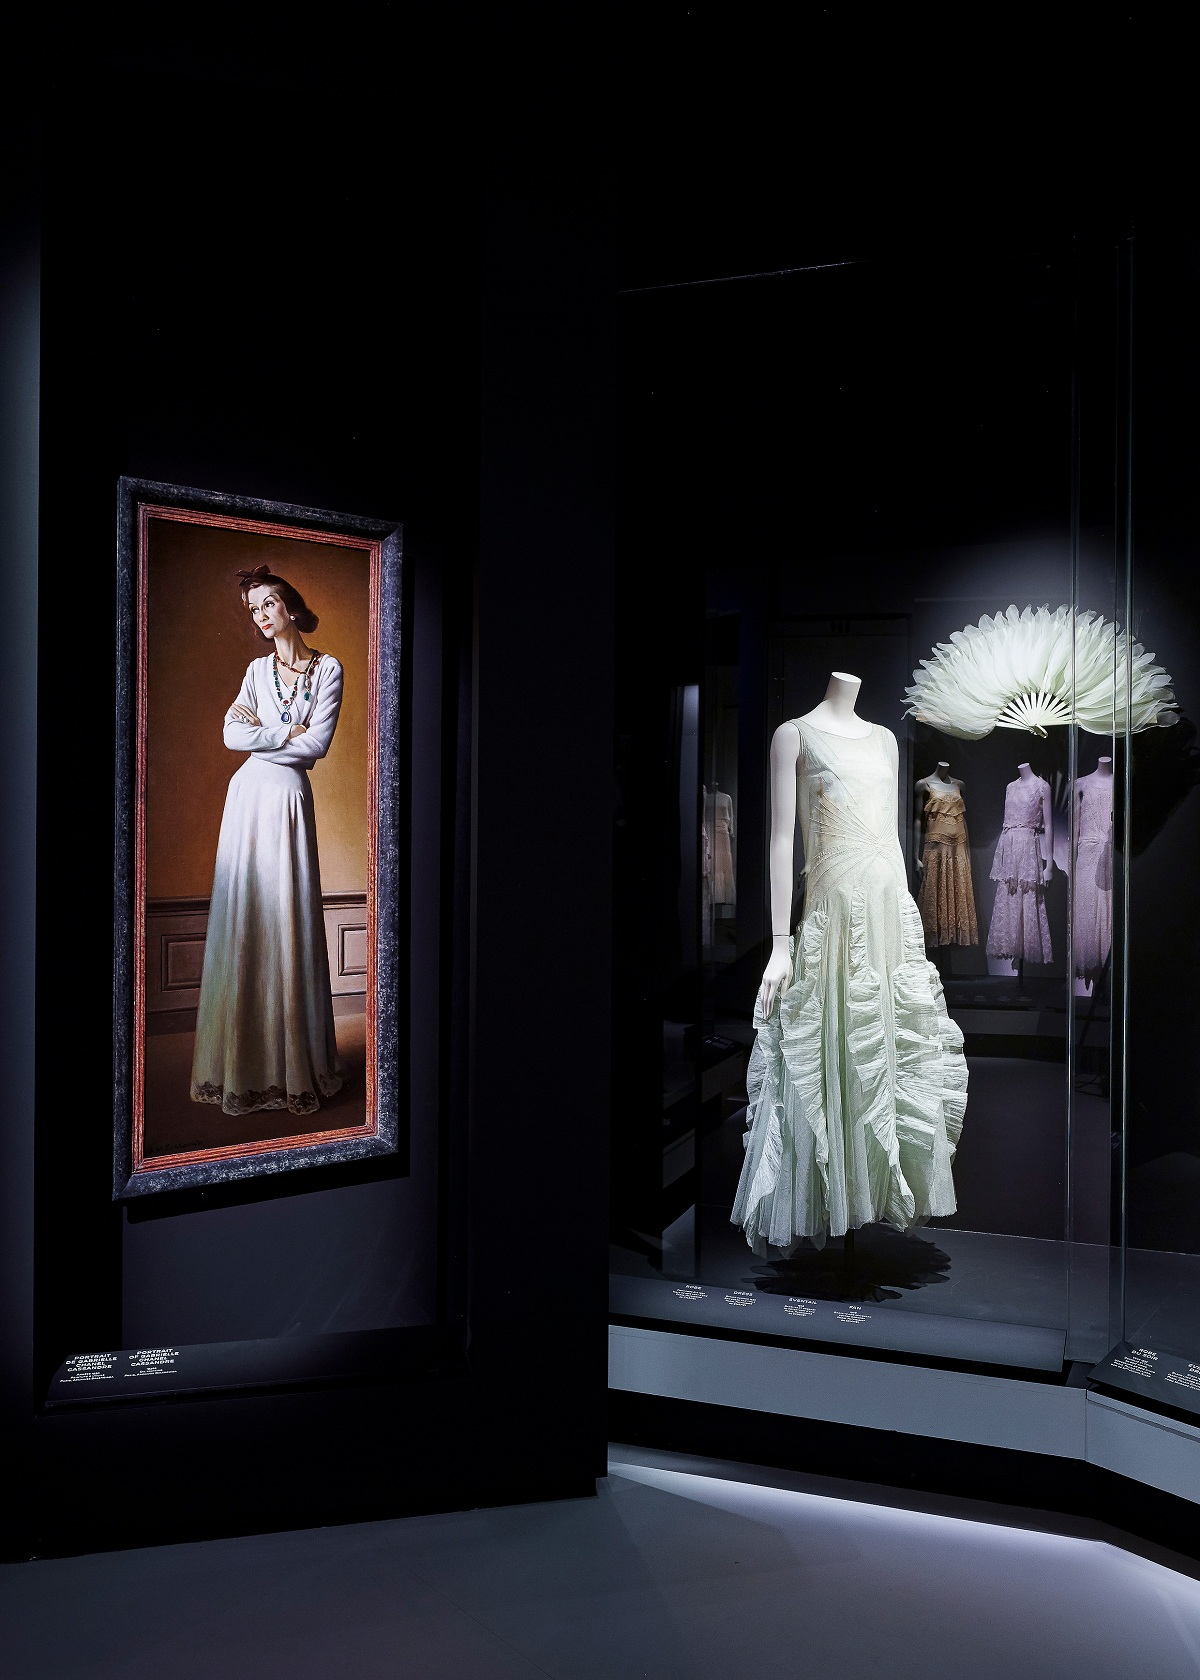 Gabrielle_Chanel_Manifeste_de_mode_Exhibition_Fashionela (10)